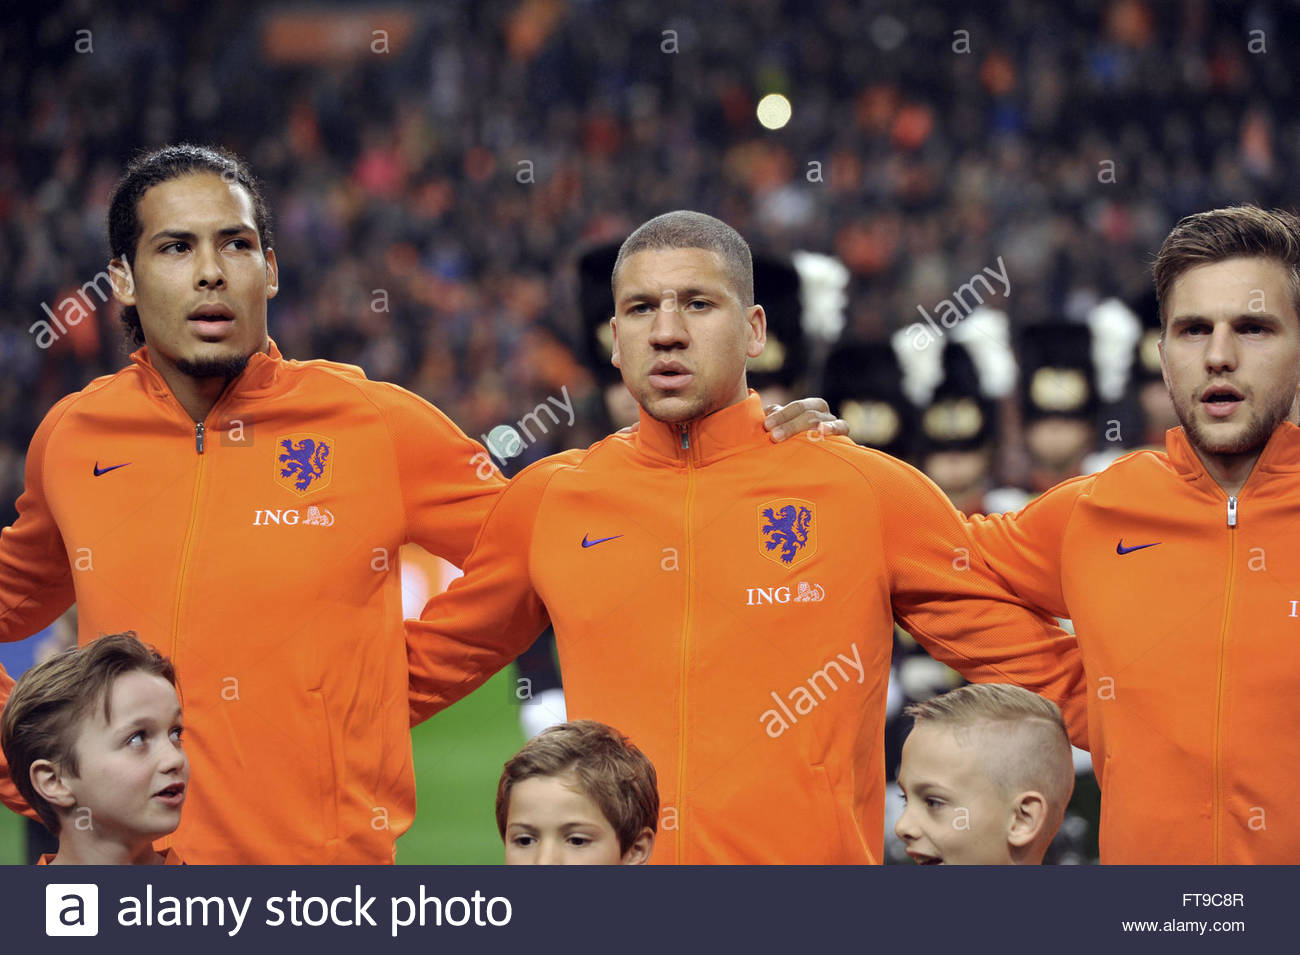 ¿Cuánto mide Virgil Van Dijk? - Altura - Real height Amsterdam-the-netherlands-25th-march-2016-international-friendly-the-FT9C8R